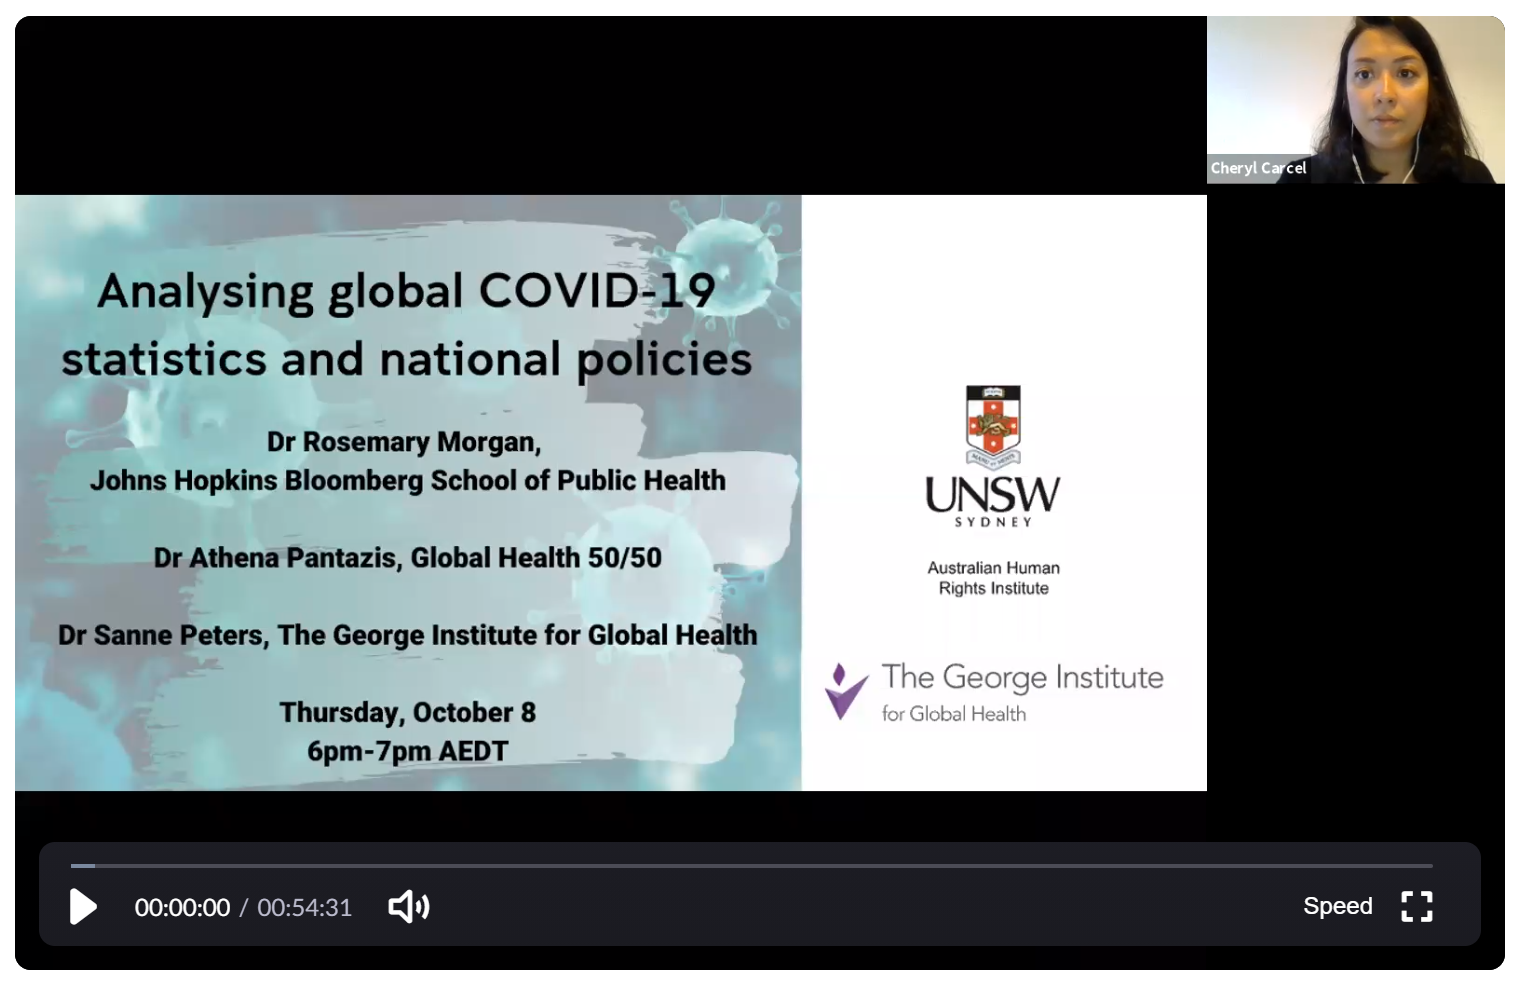 Analysing global COVID-19 statistics and national policies